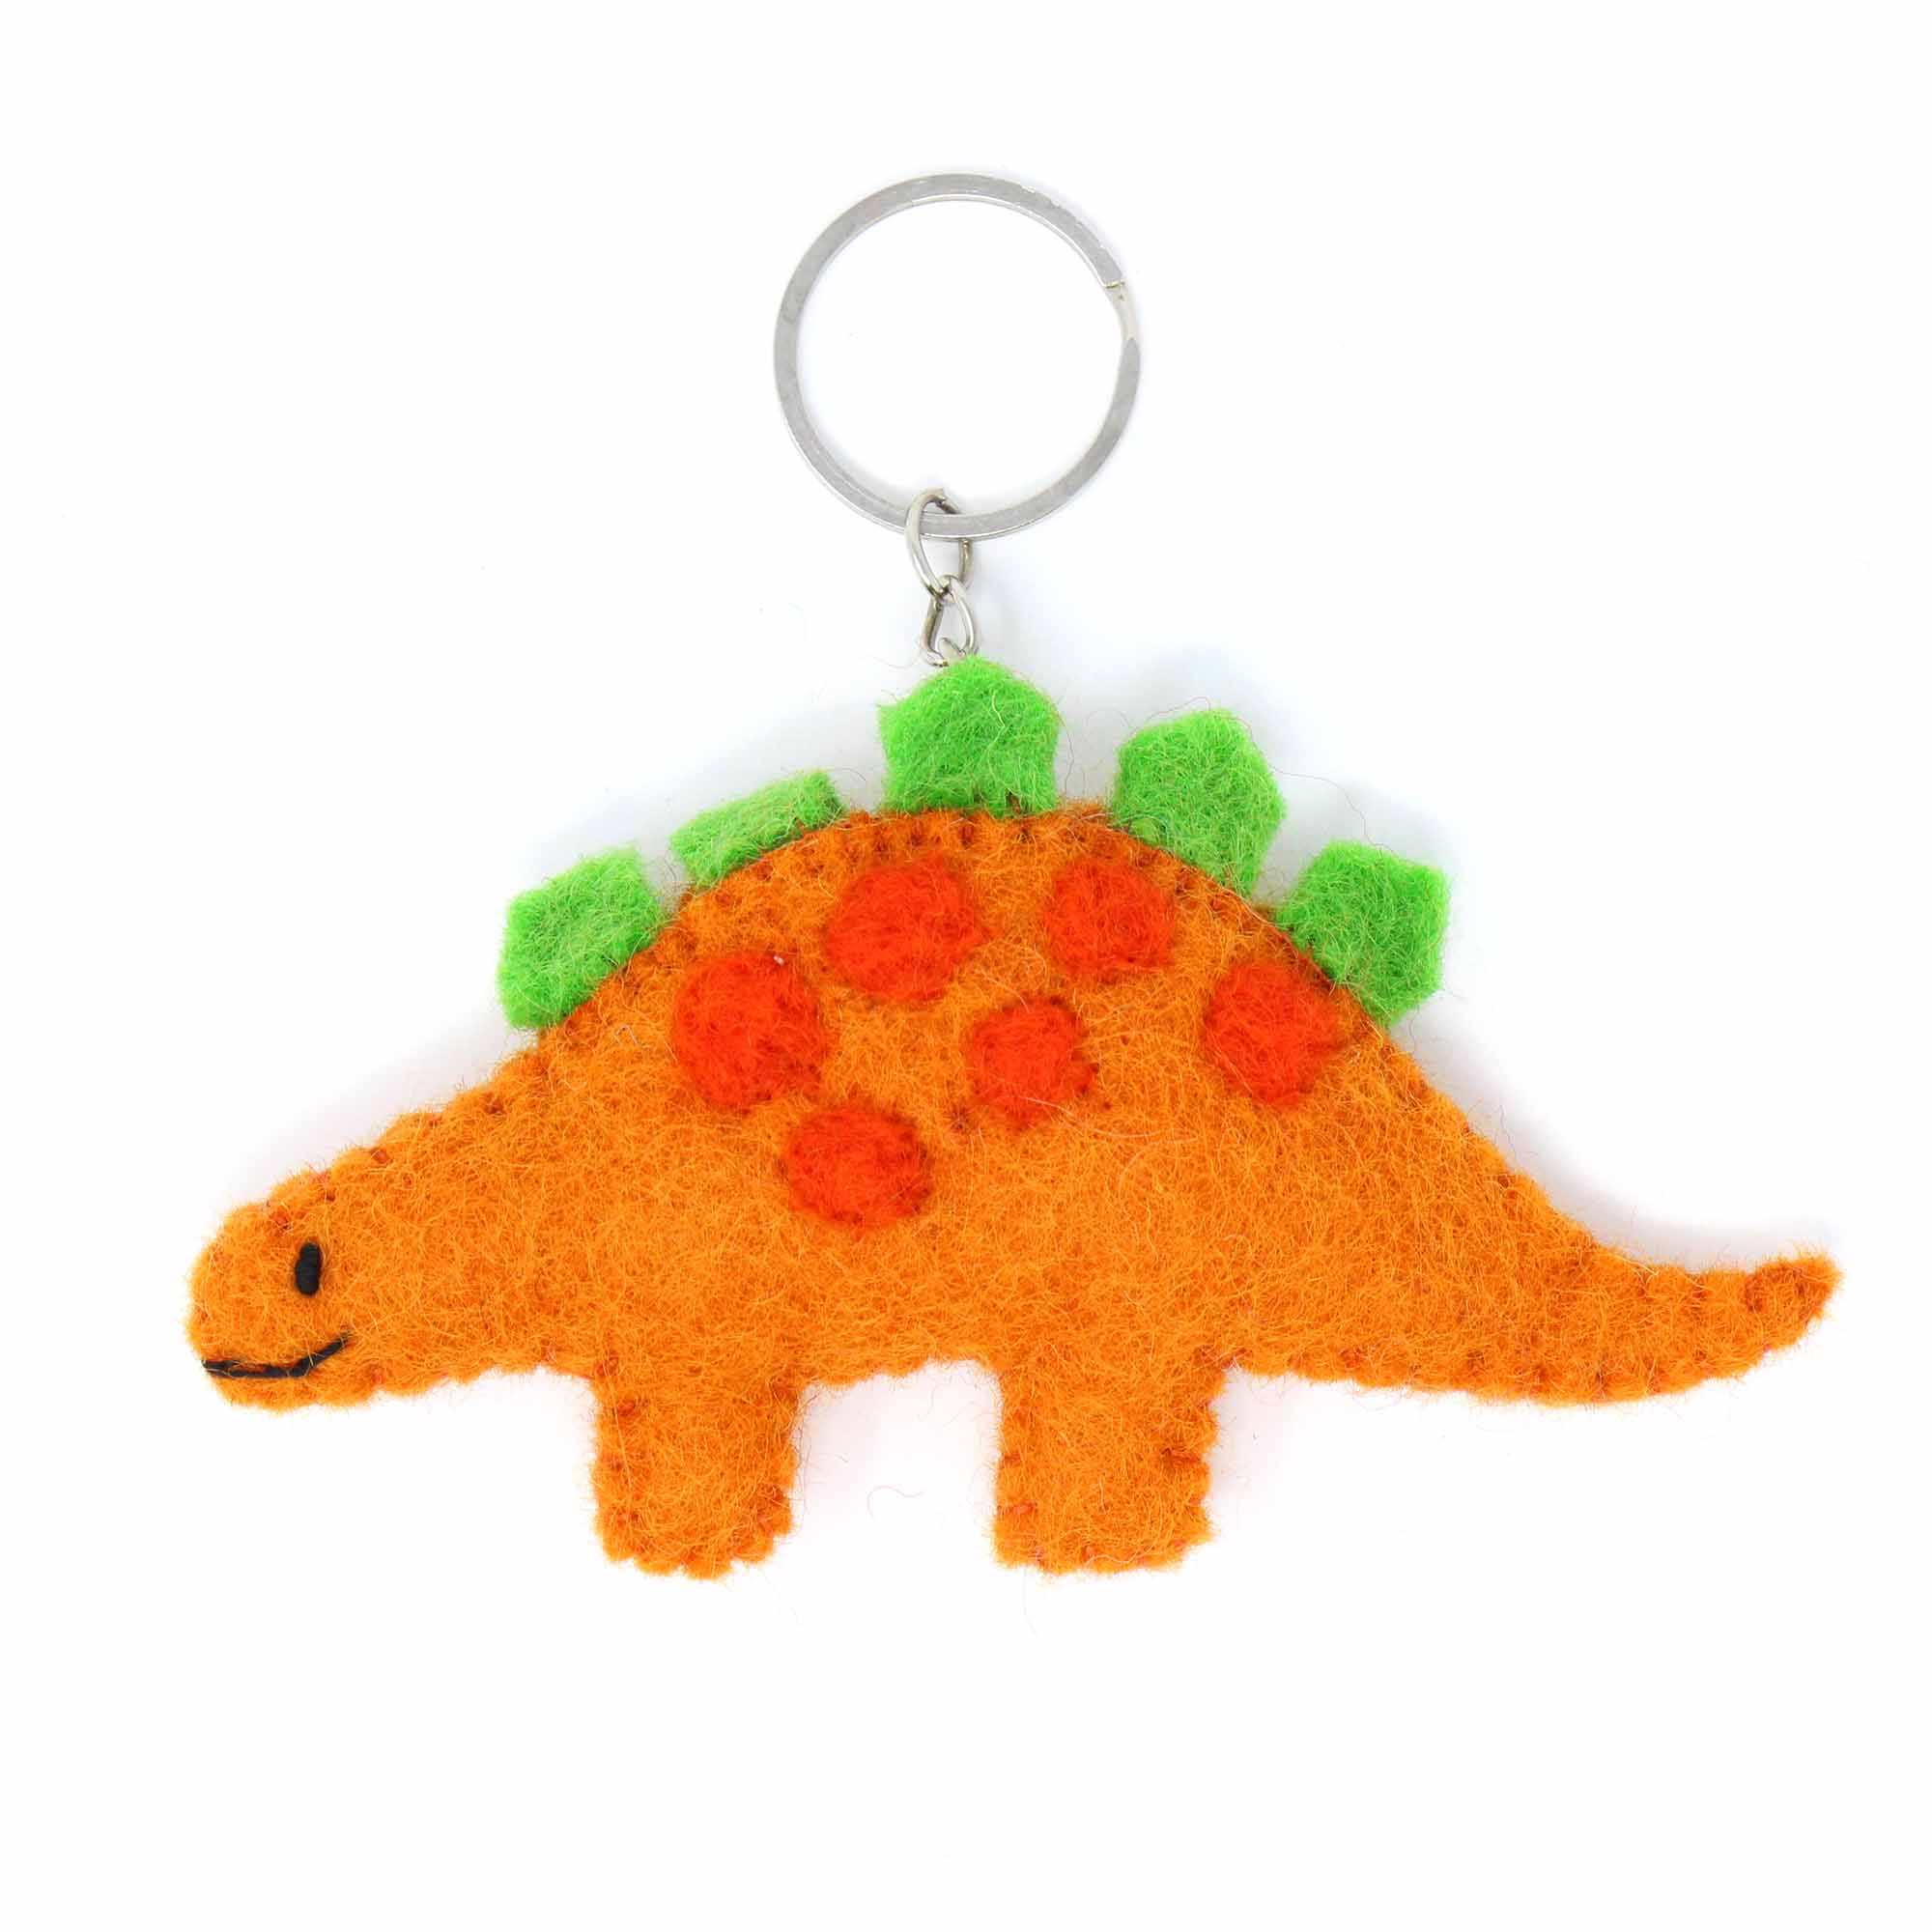 Hand Crafted Felt from Nepal: Key Chain, Stegosaurus